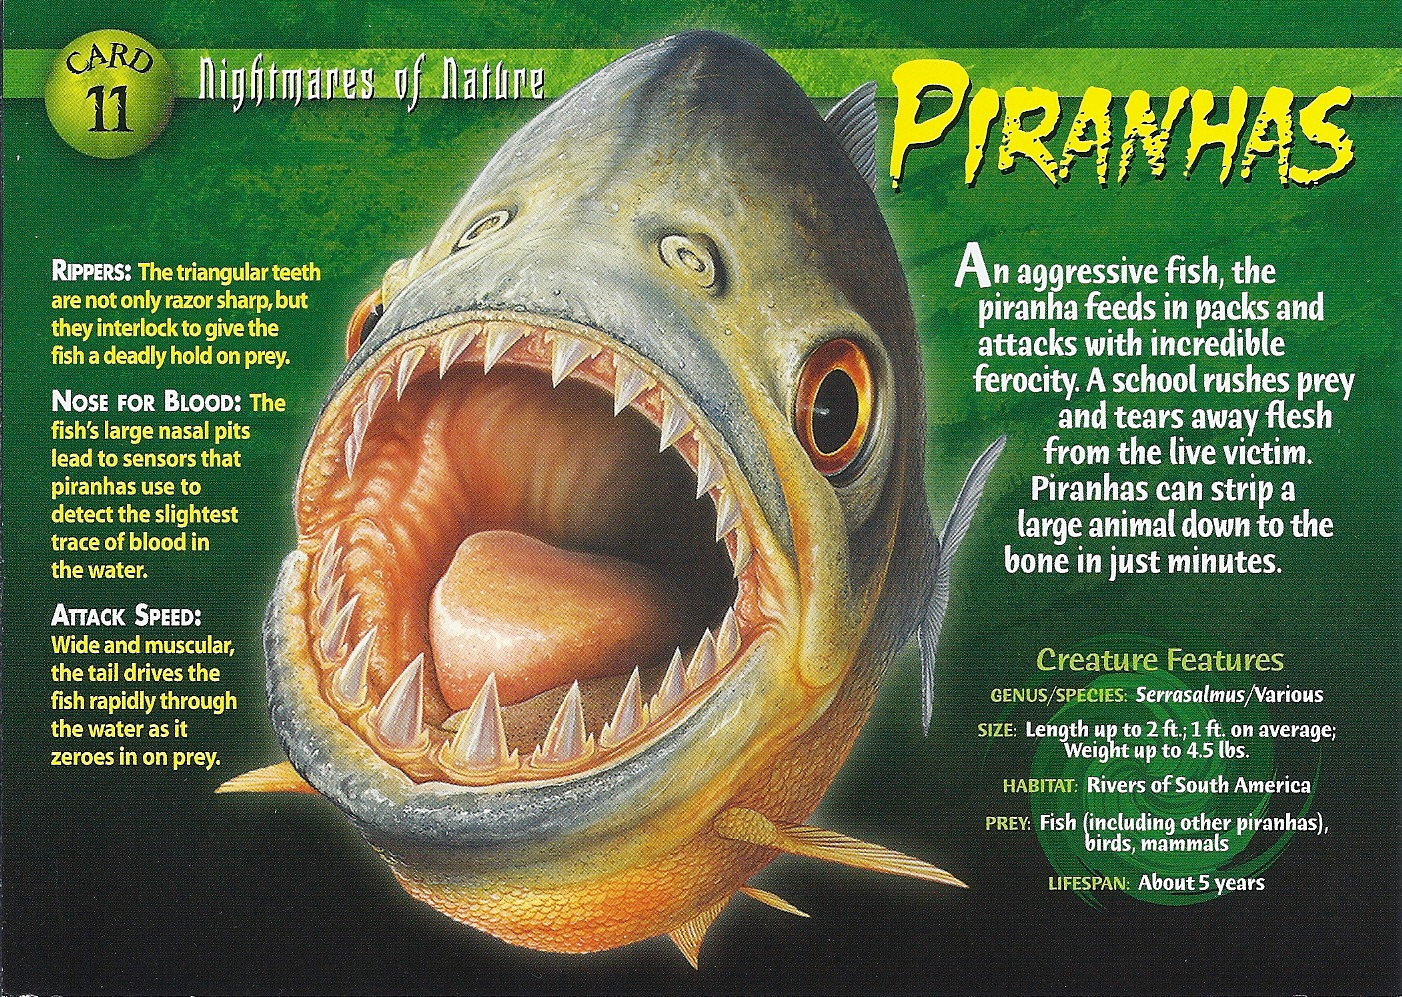 Piranhas Nightmares of...